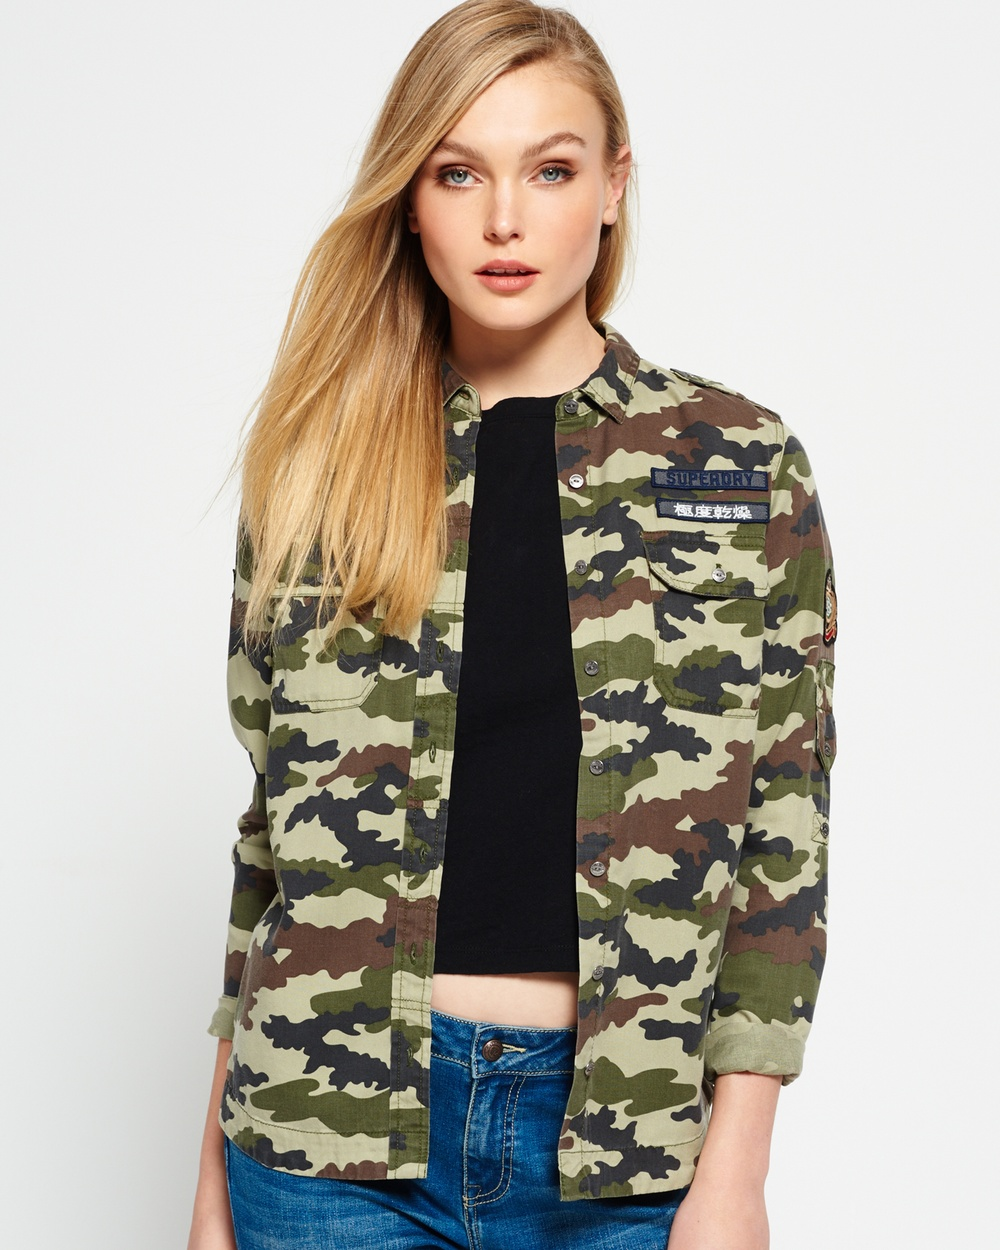 Superdry Military Shirt Tops Cloud Camo Military Shirt